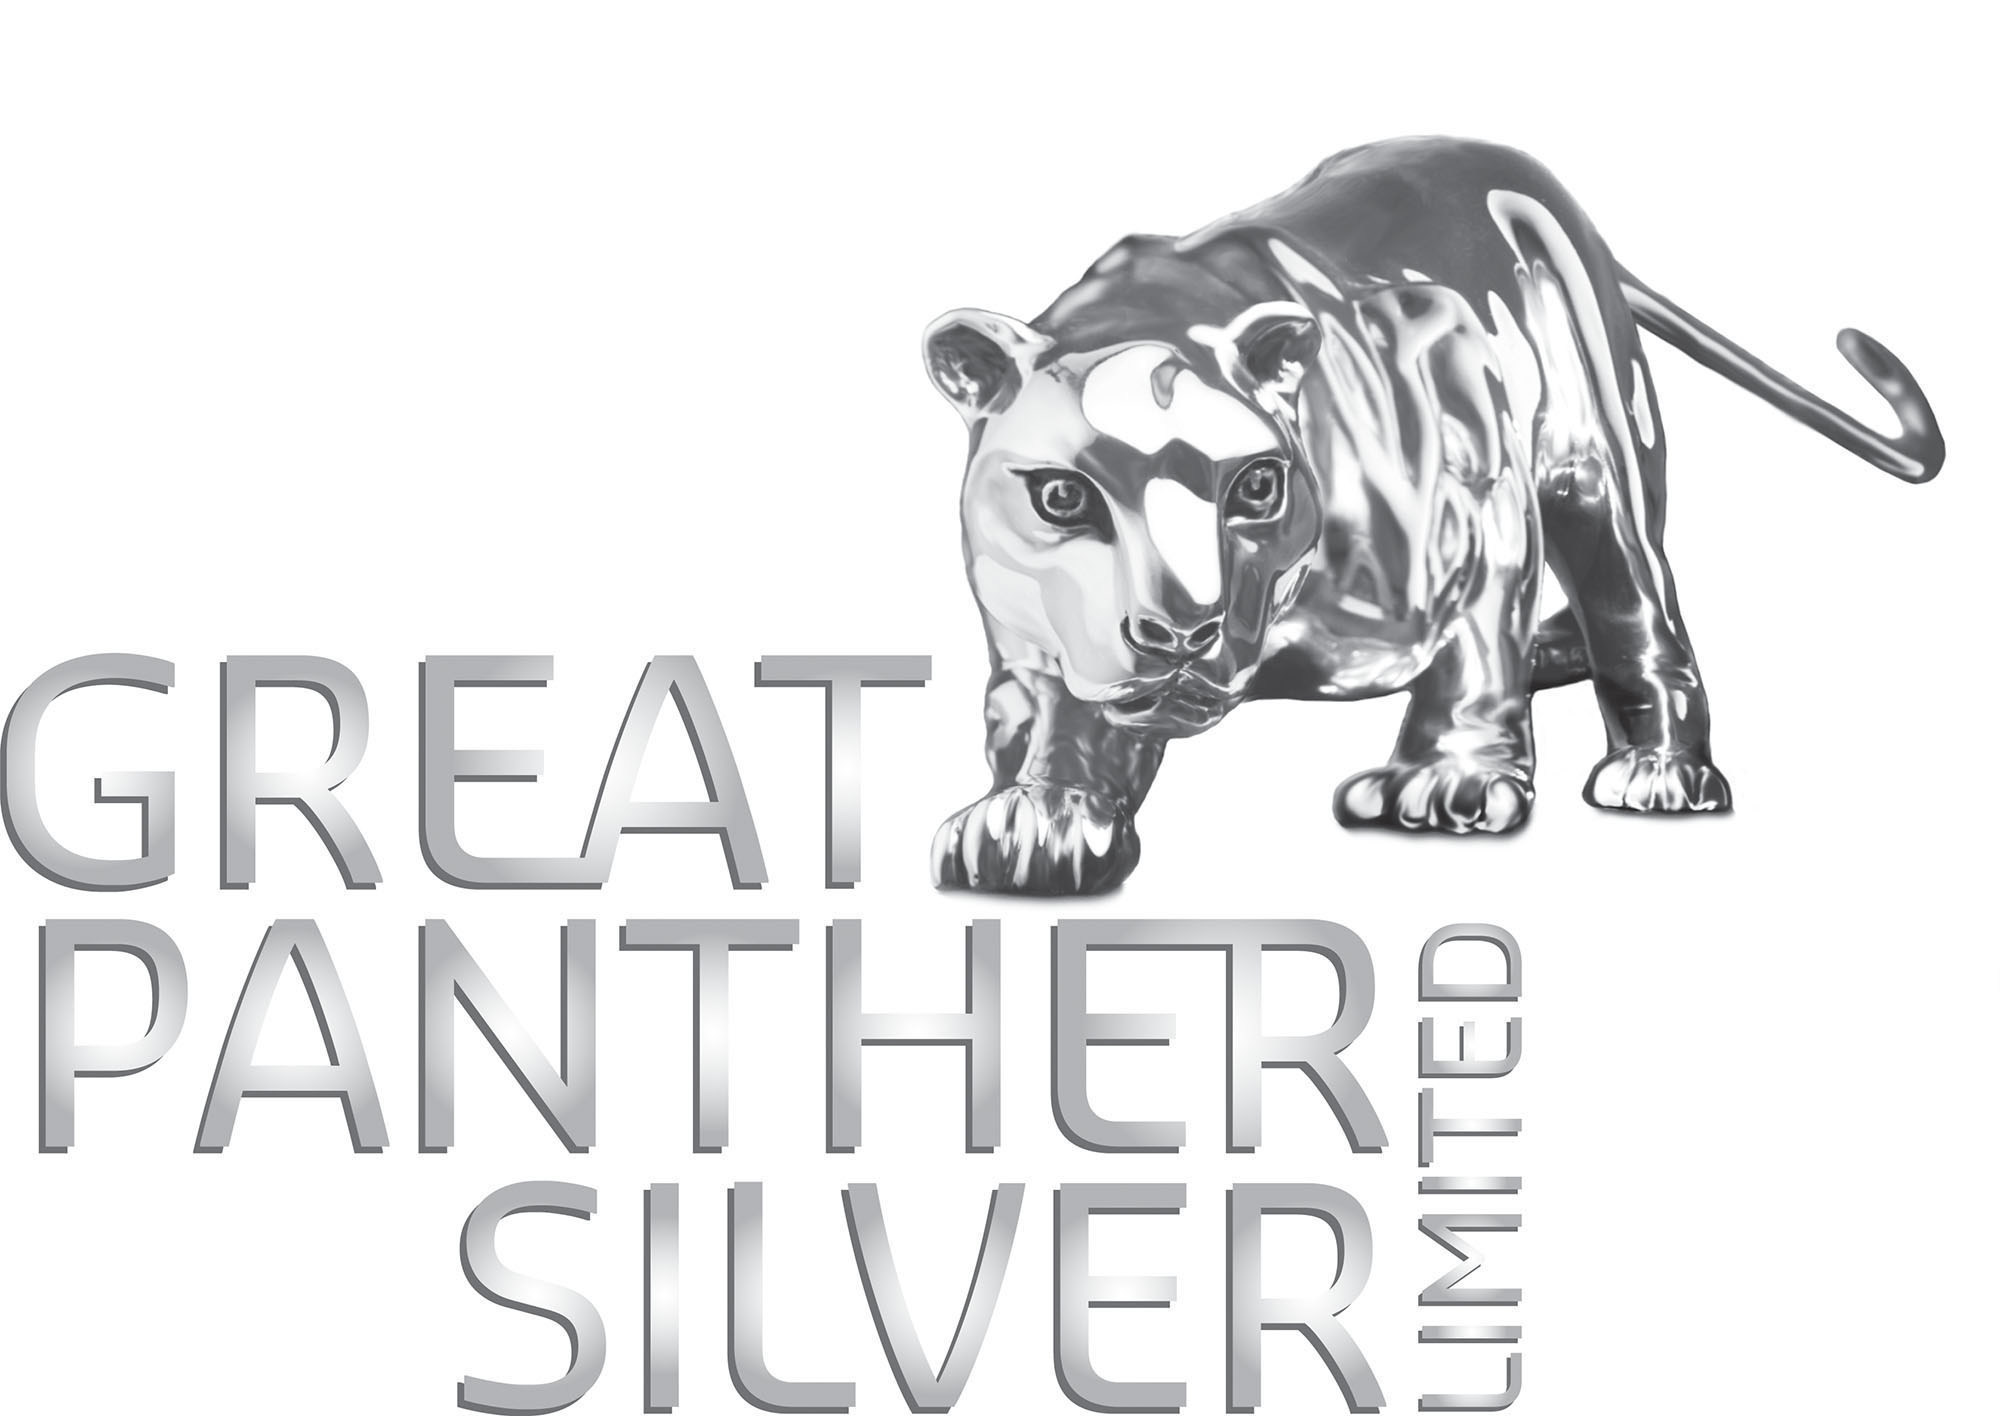 Great Panther Silver Provides 2019 Production and Cost